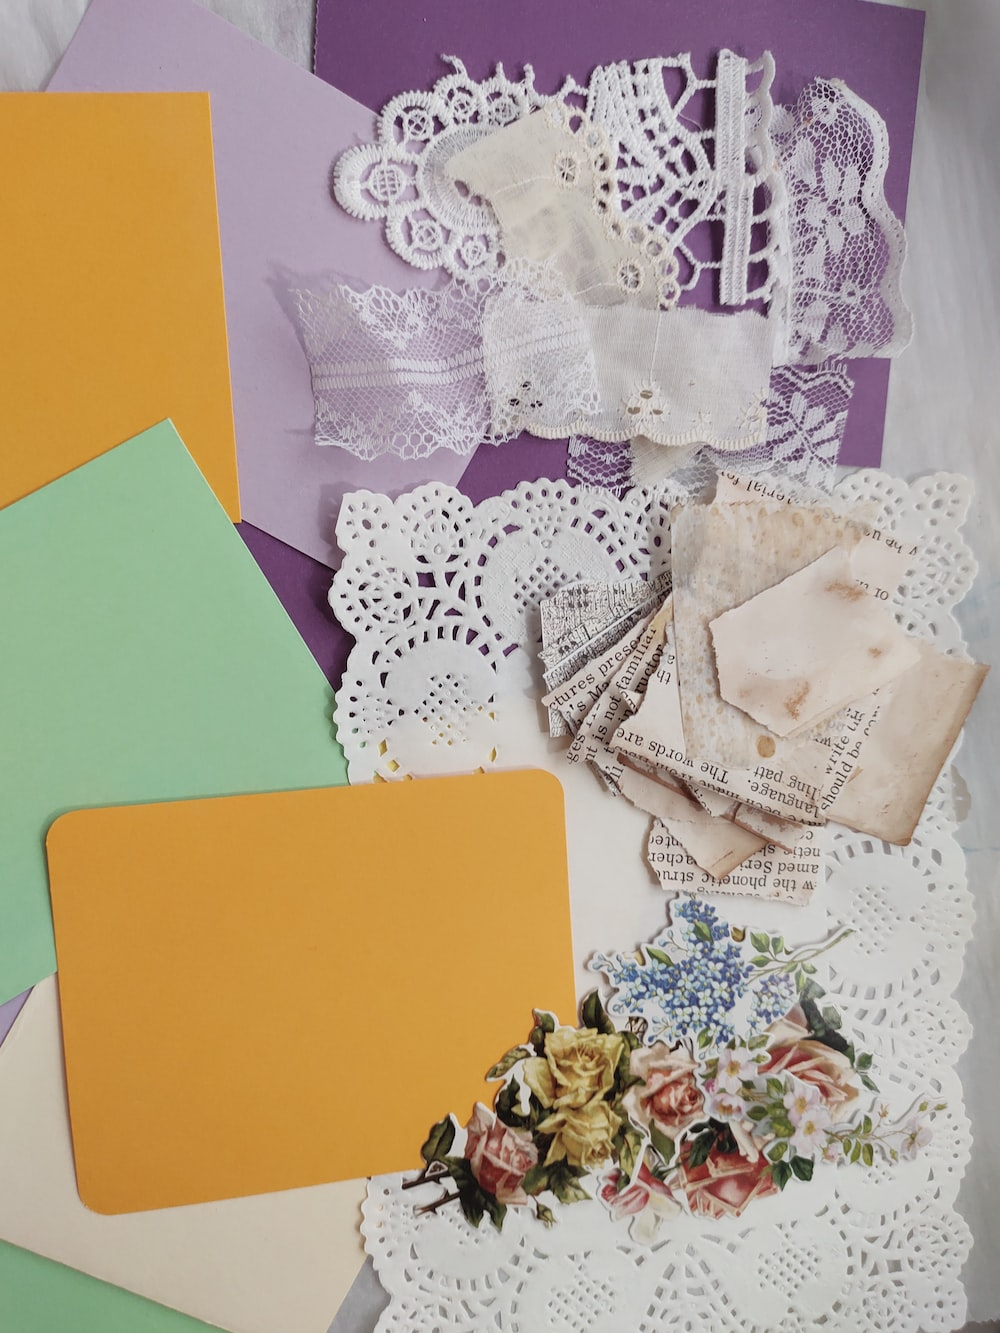 green paper on white floral textile